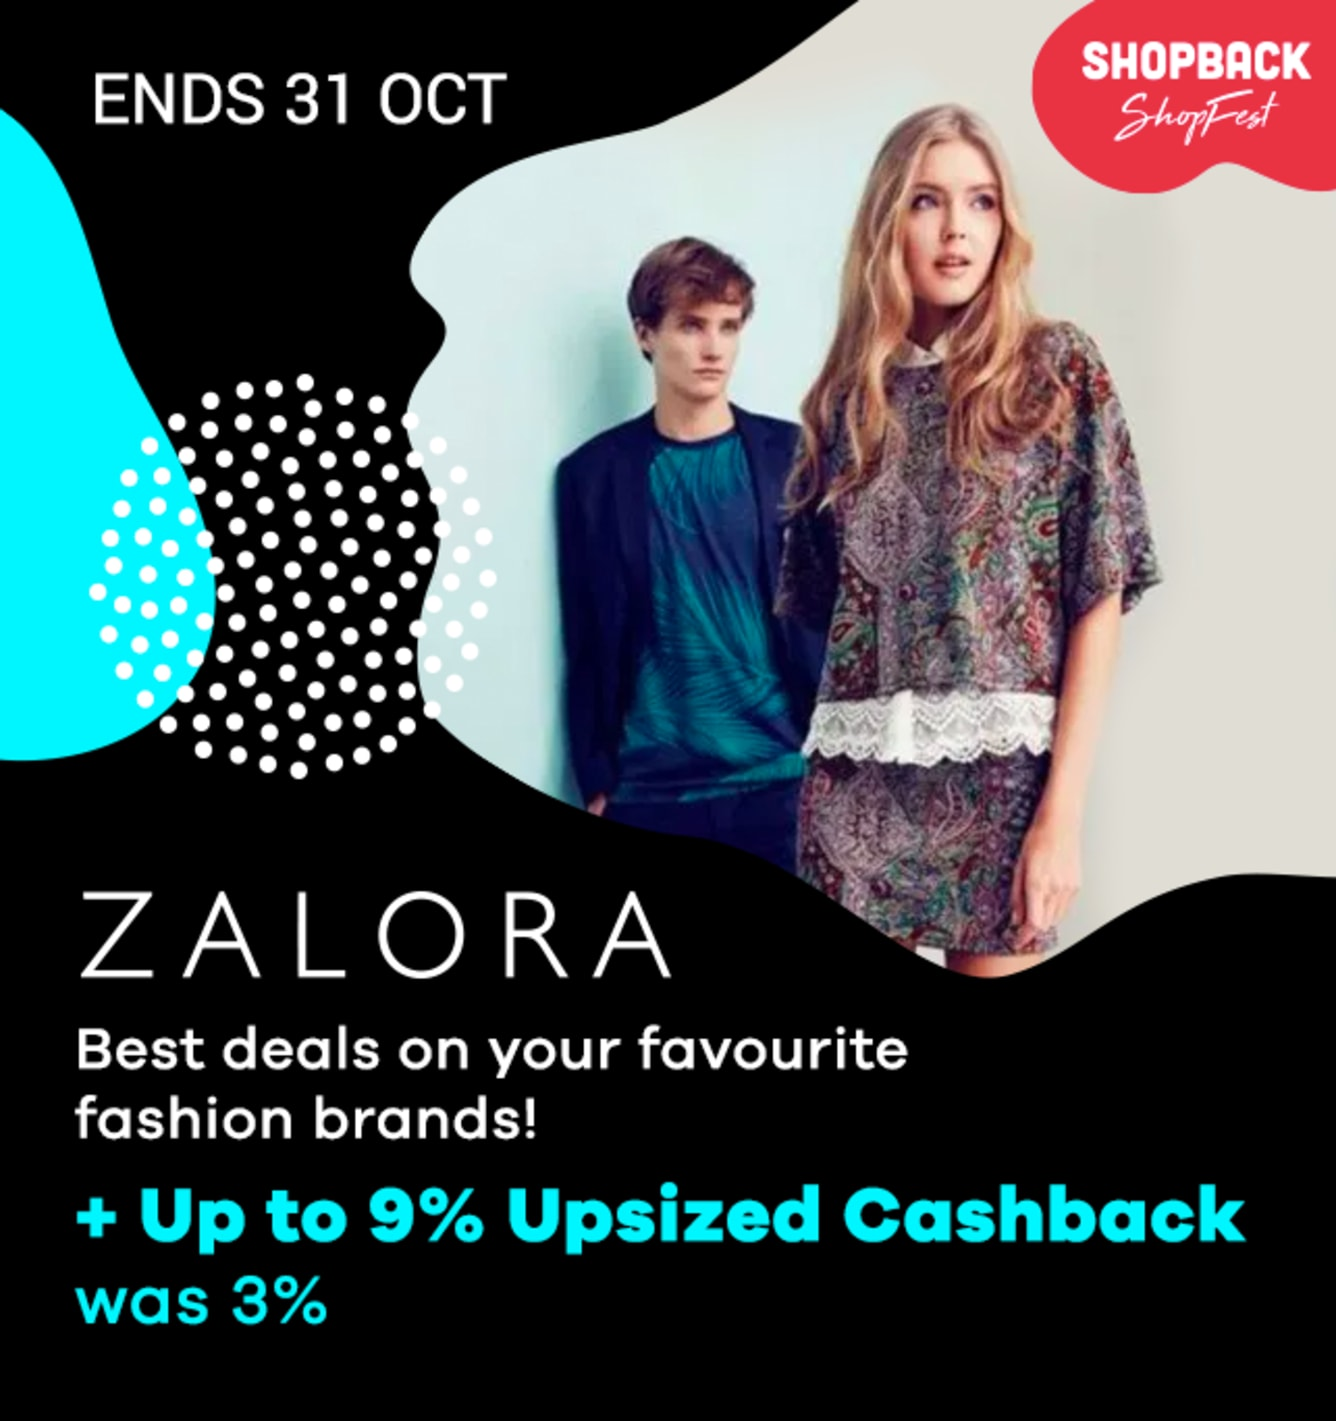 Zalora Up to 9% Cashback Shopback Shopfest